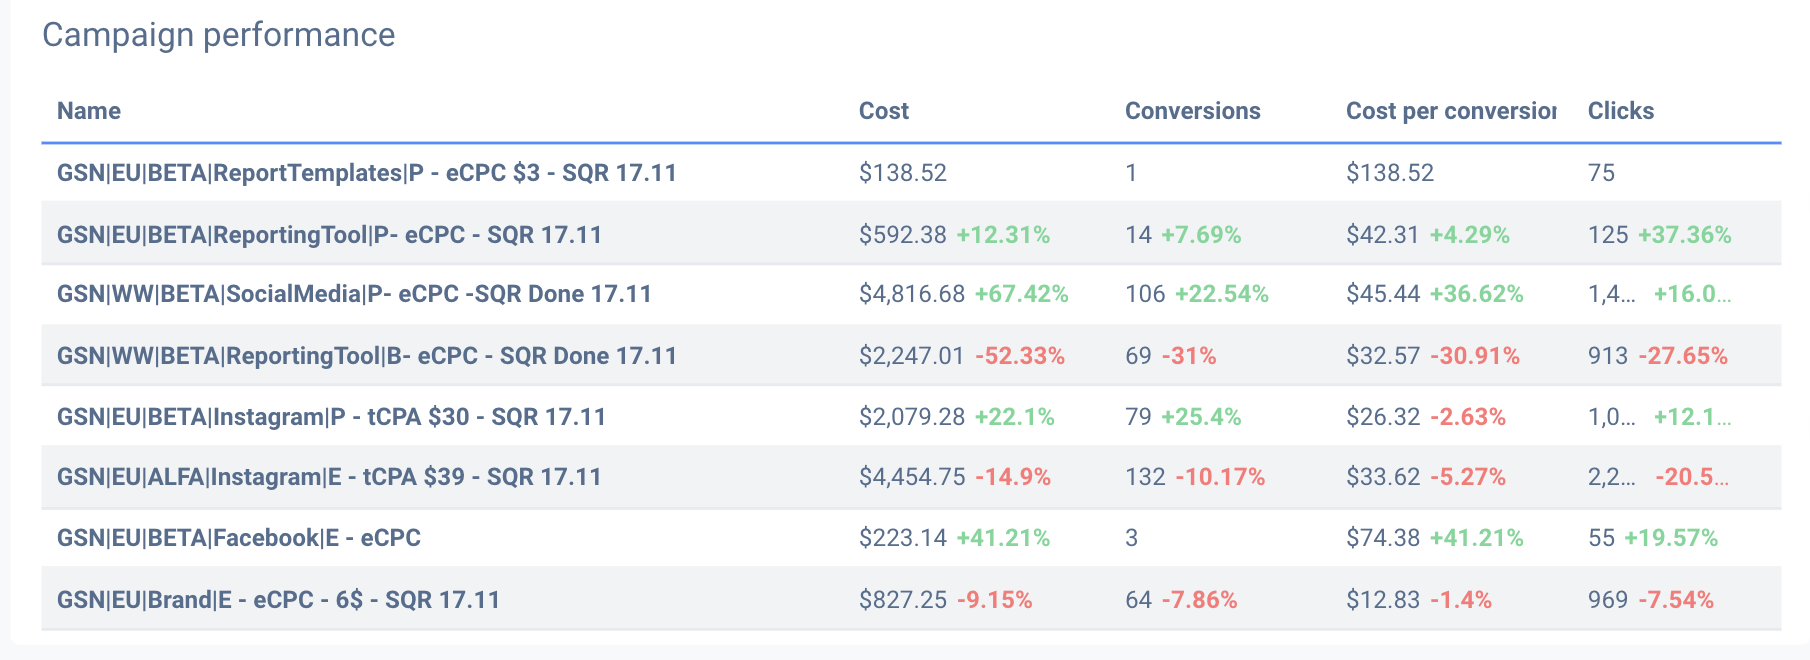 Twitter audit report can contain campaign and their performance metrics.